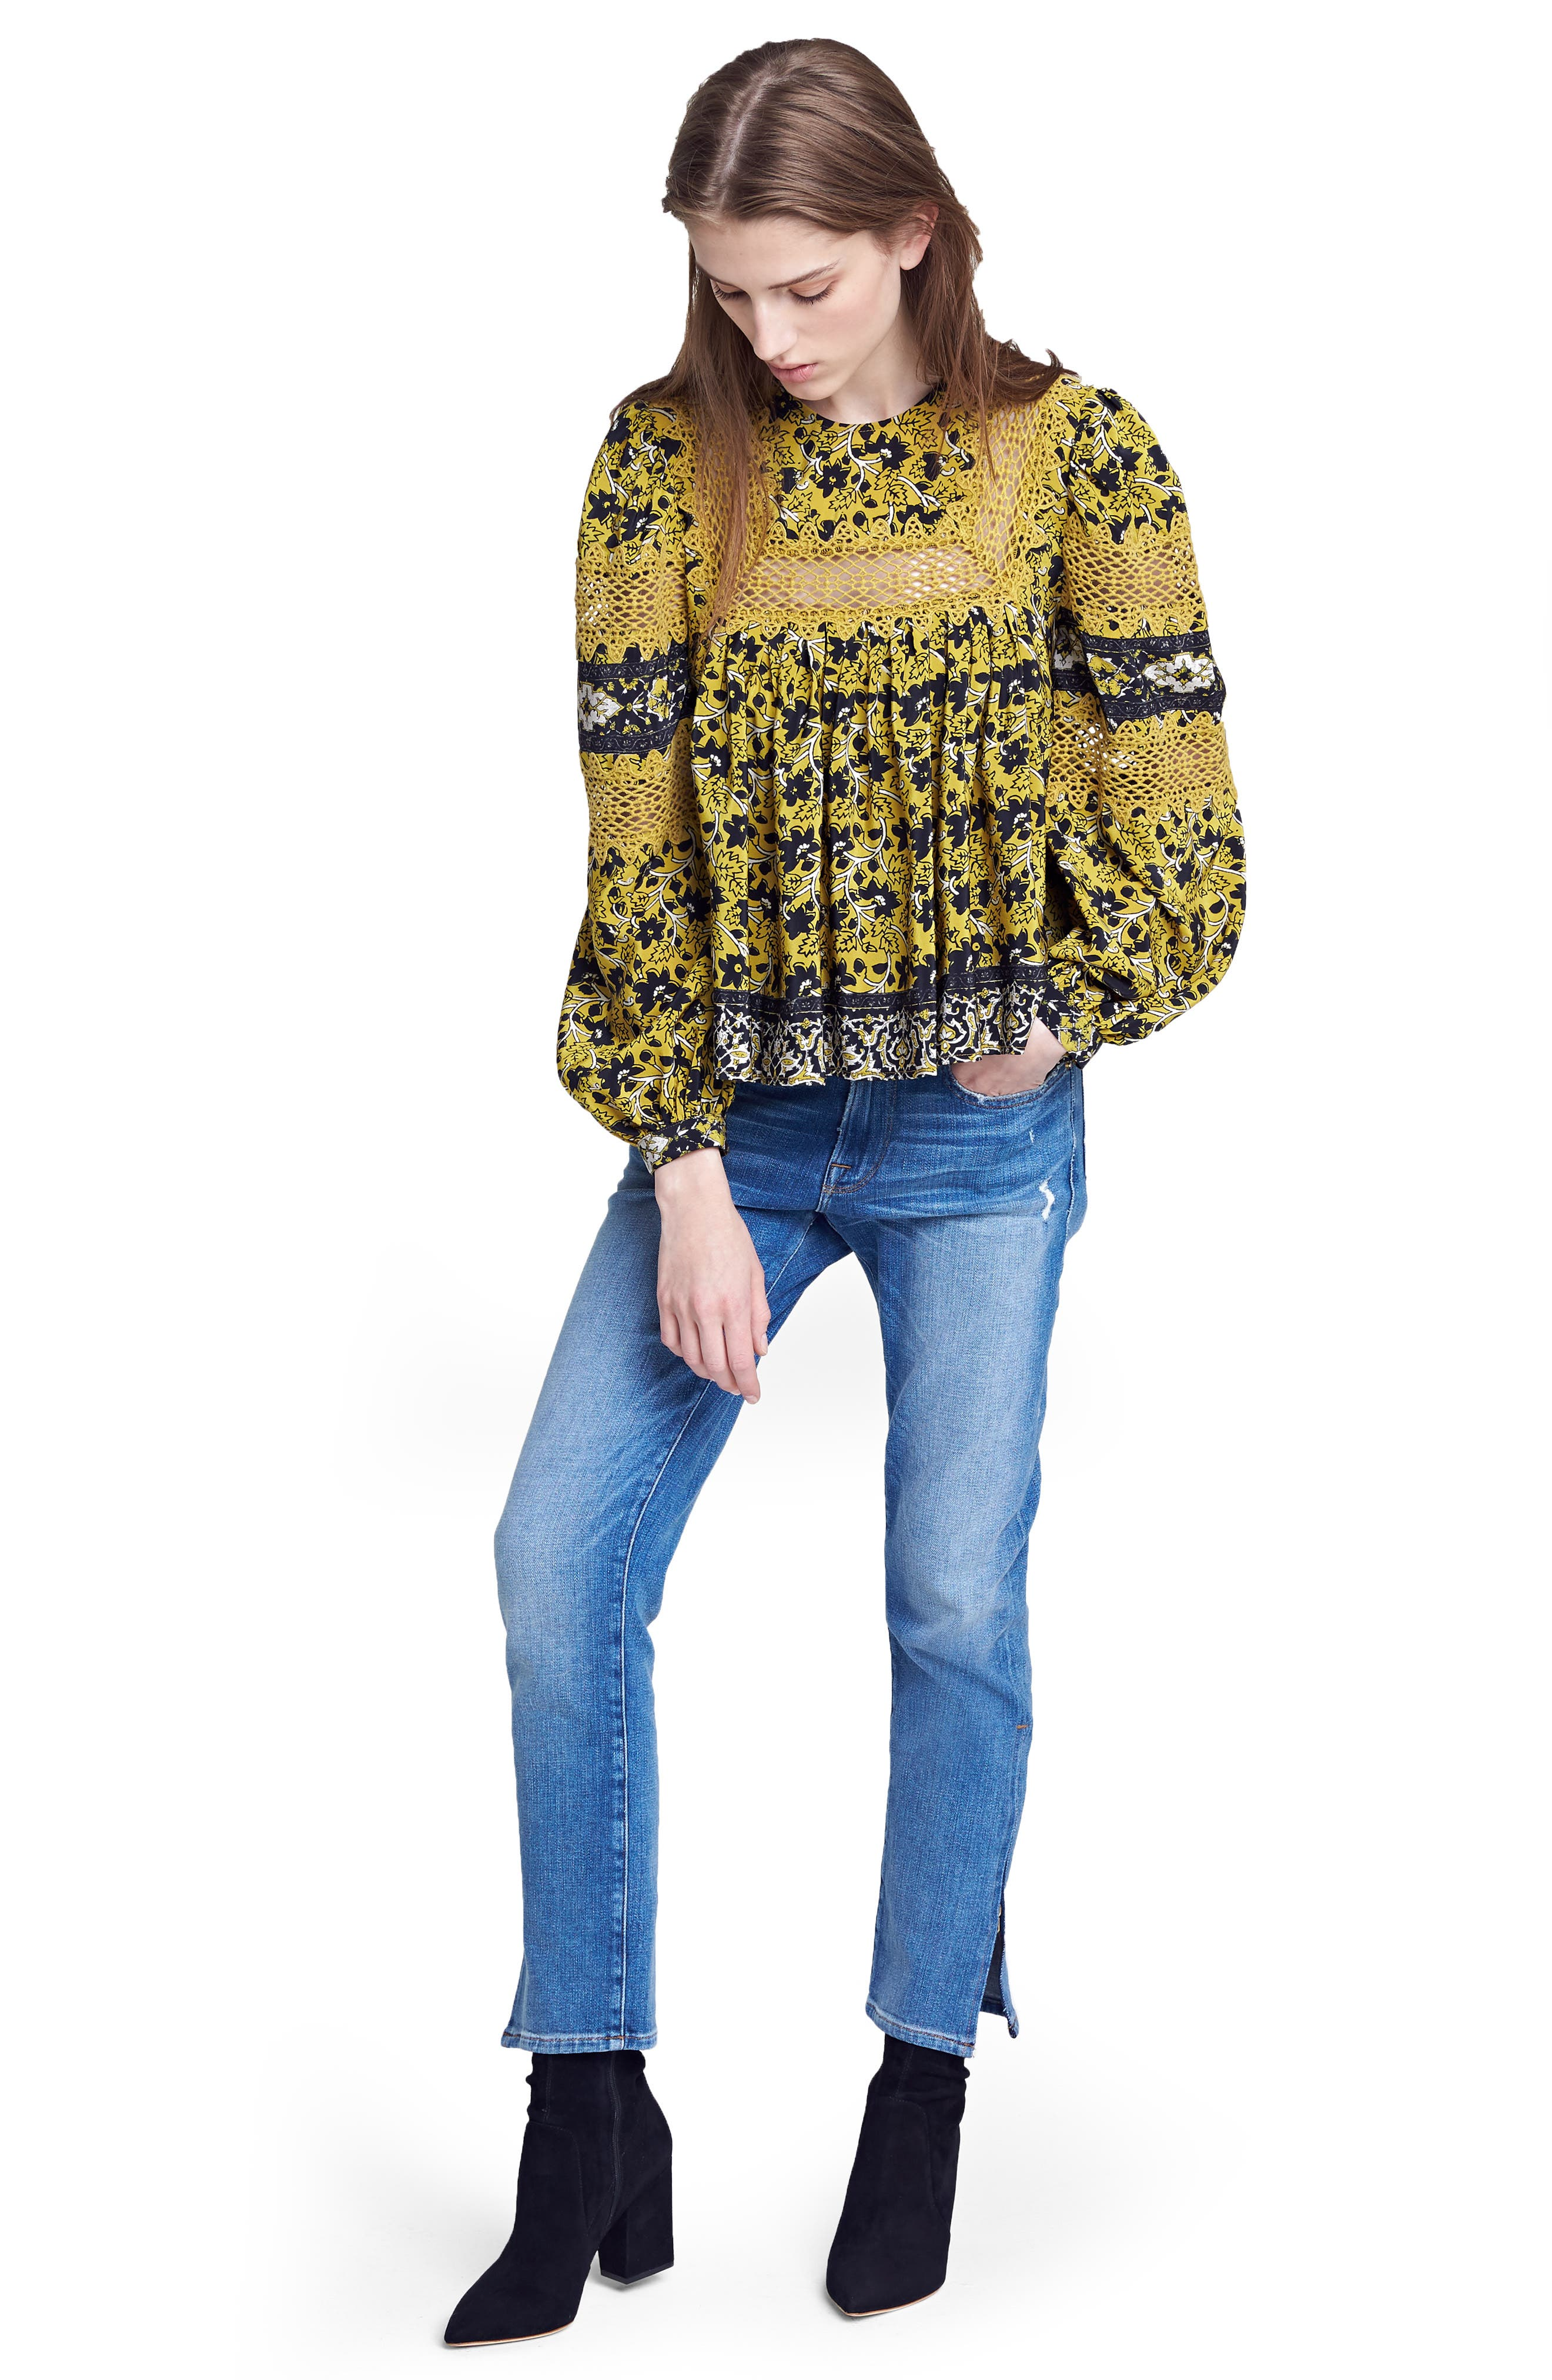 Sea Blouse & FRAME Jeans Outfit with Accessories